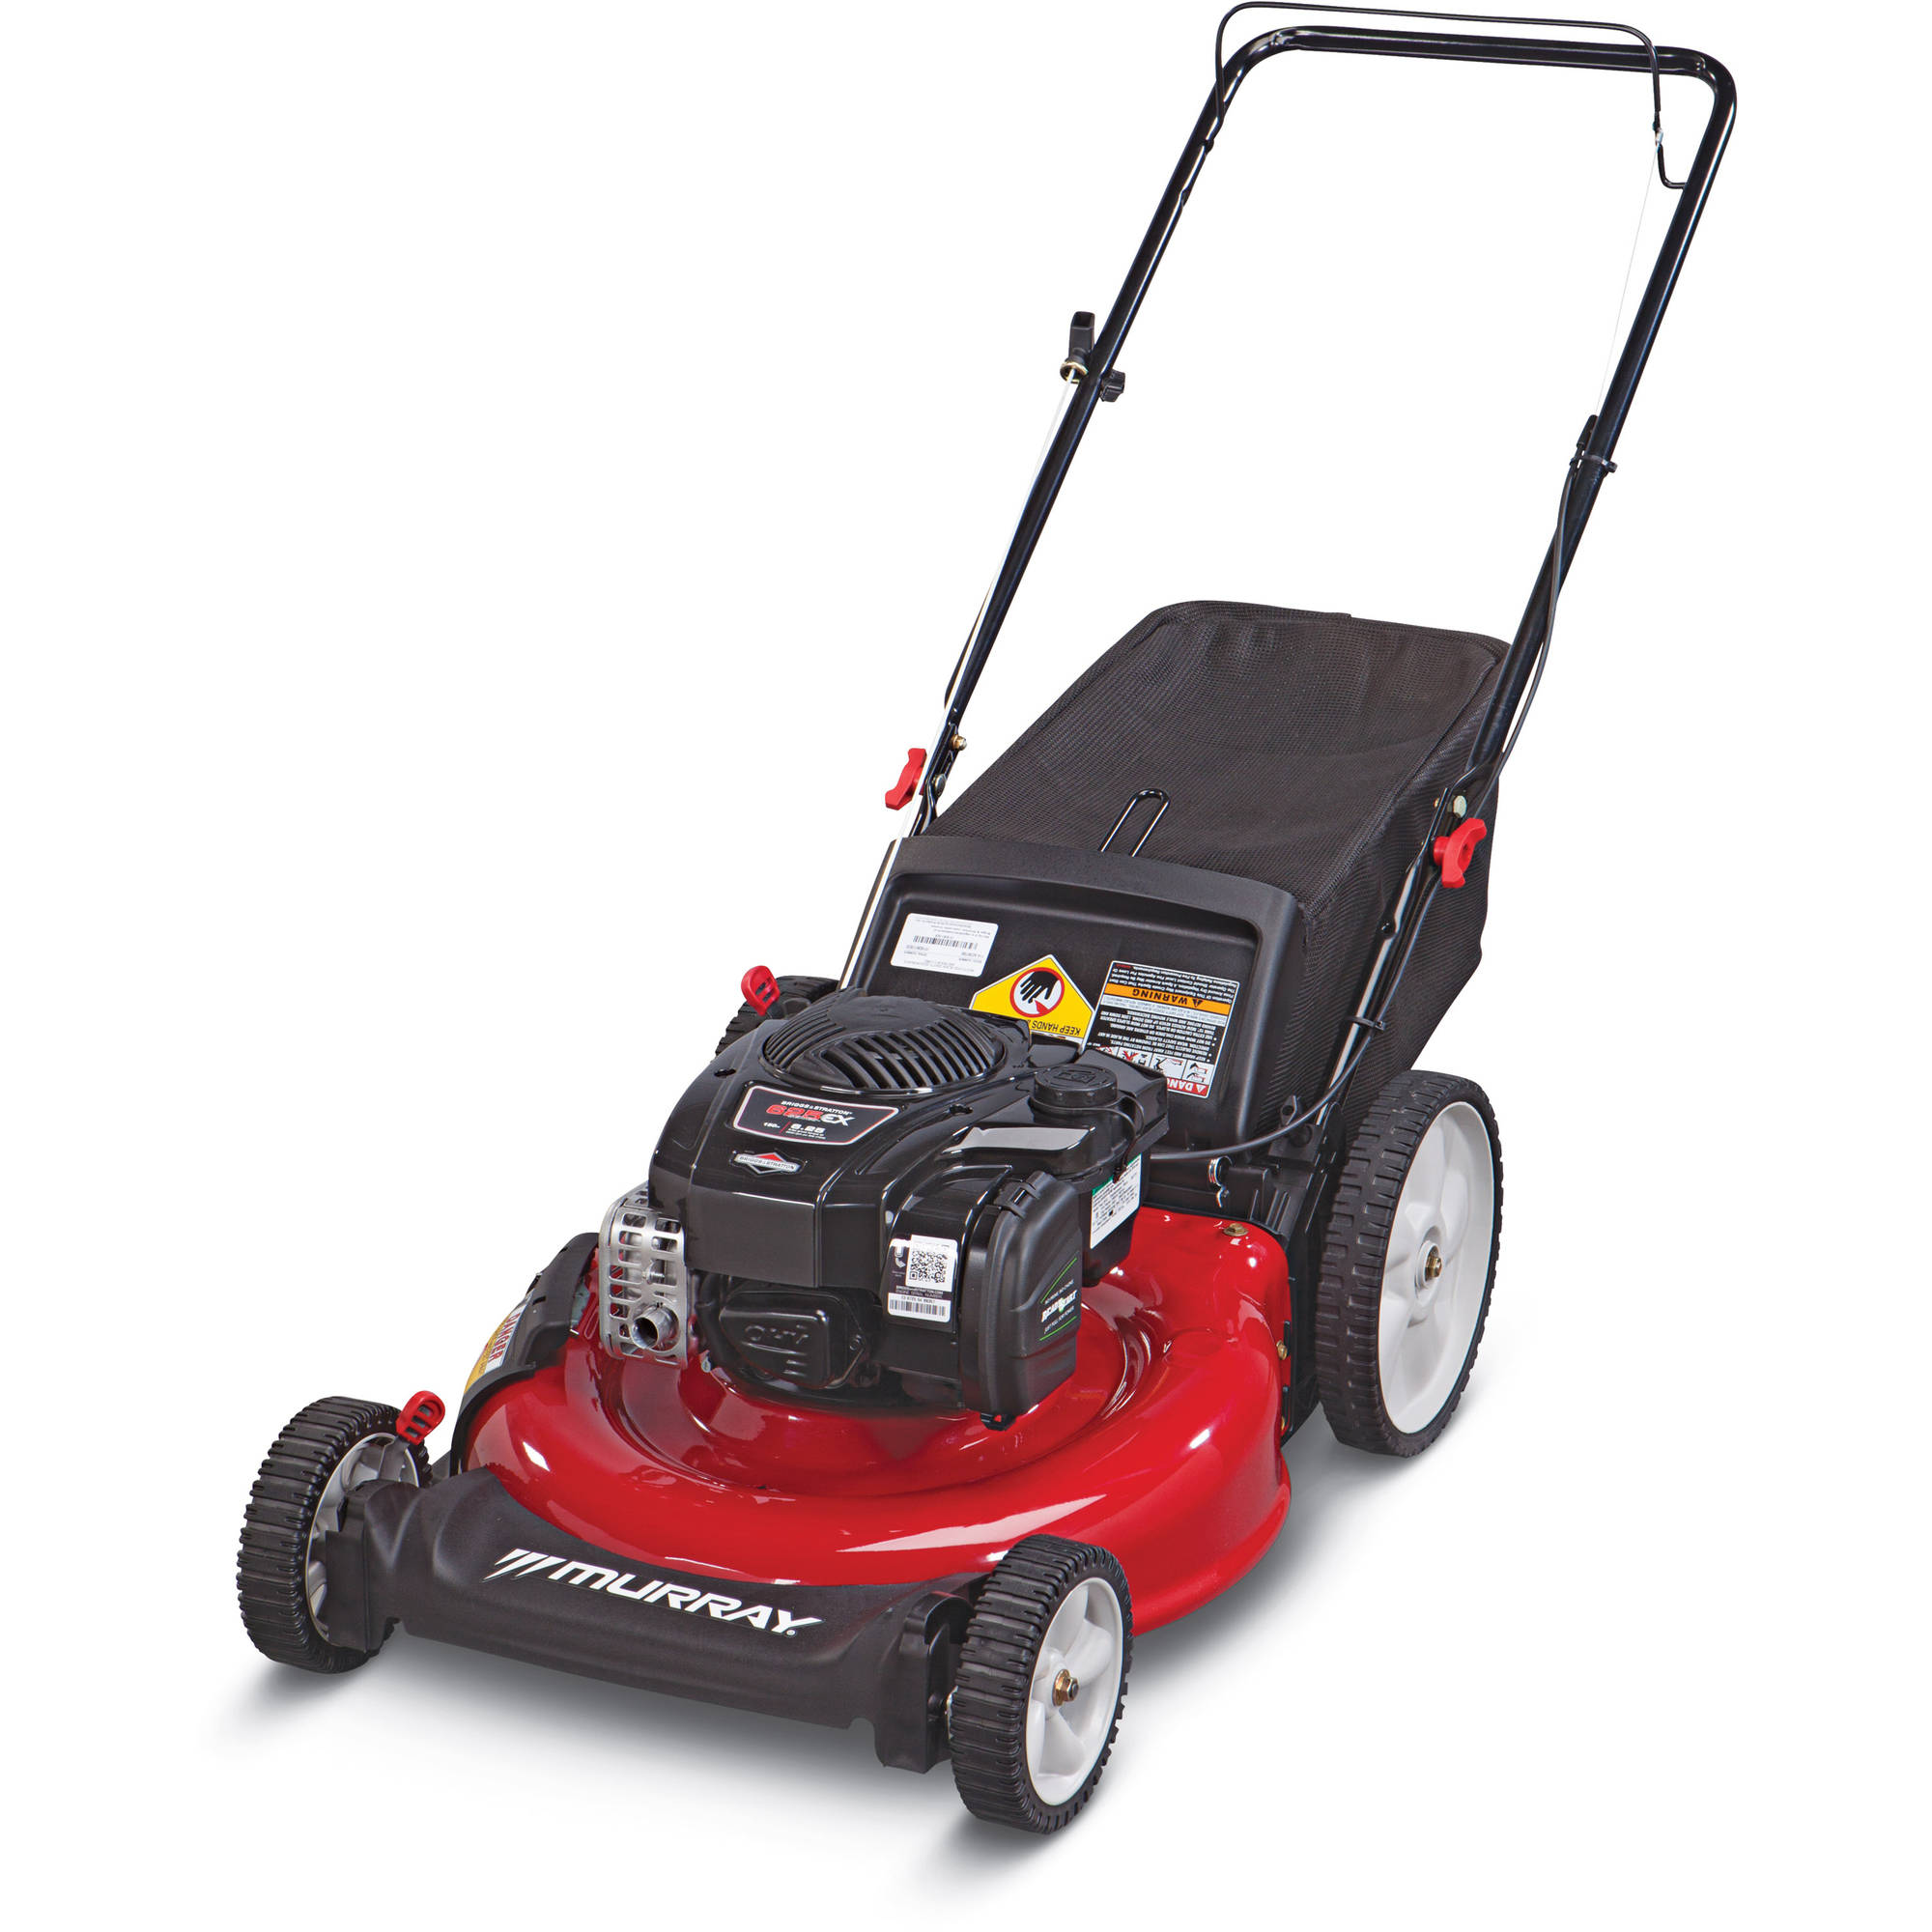 murray 21 gas push mower with side discharge mulching rear bag rh walmart com Murray M22450 Lawn Mower Murray Lawn Mowers Manuals